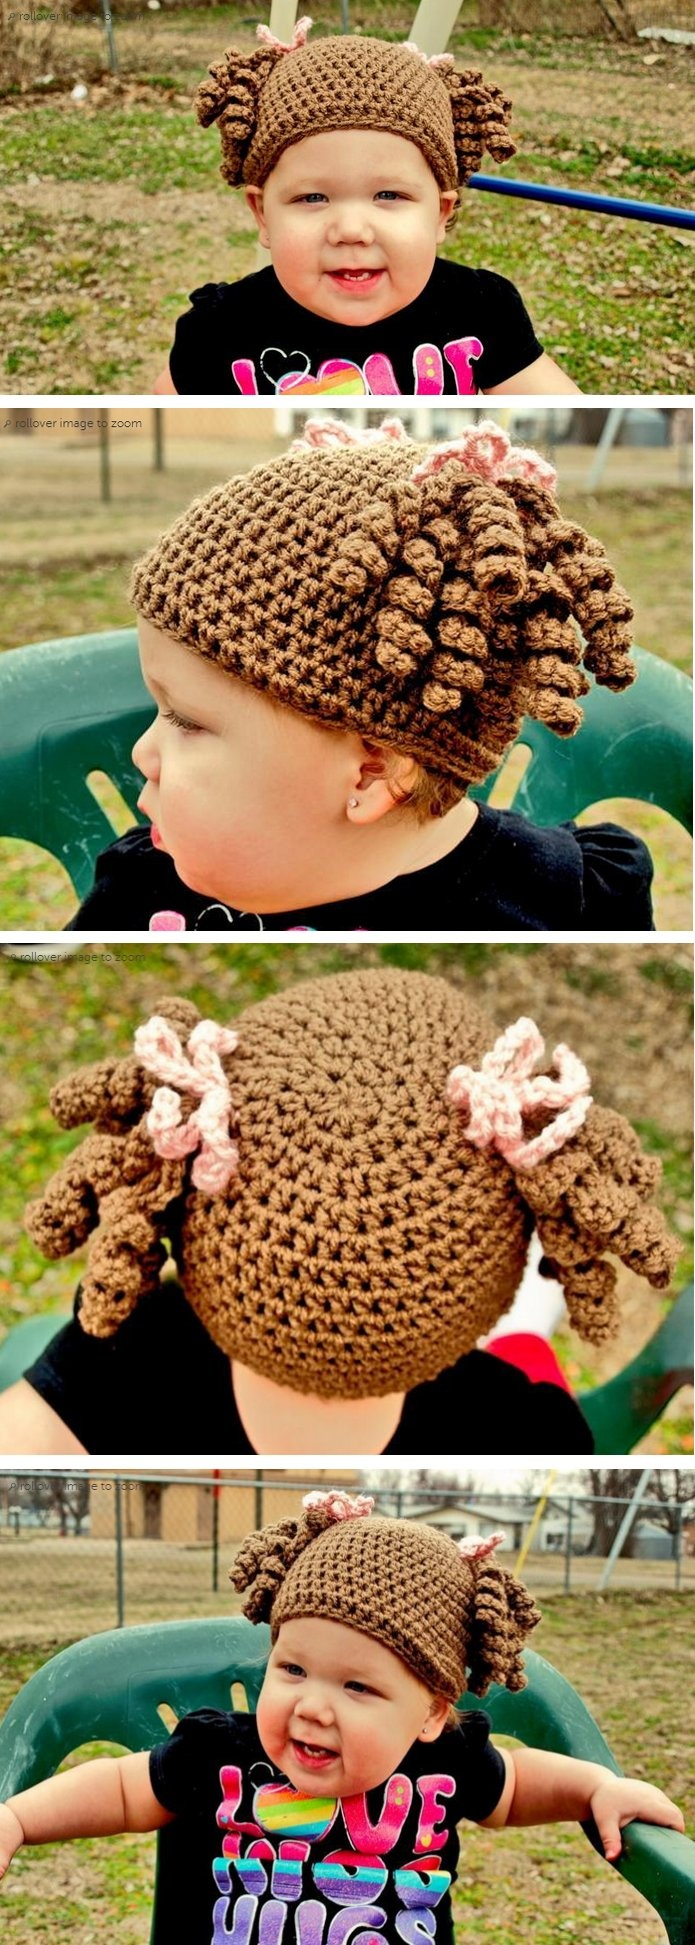 Little Miss Curly Q hat - Just make a basic beanie and add some curls and bows, reminds me of a Cabbage Patch Kid *Inspiration*